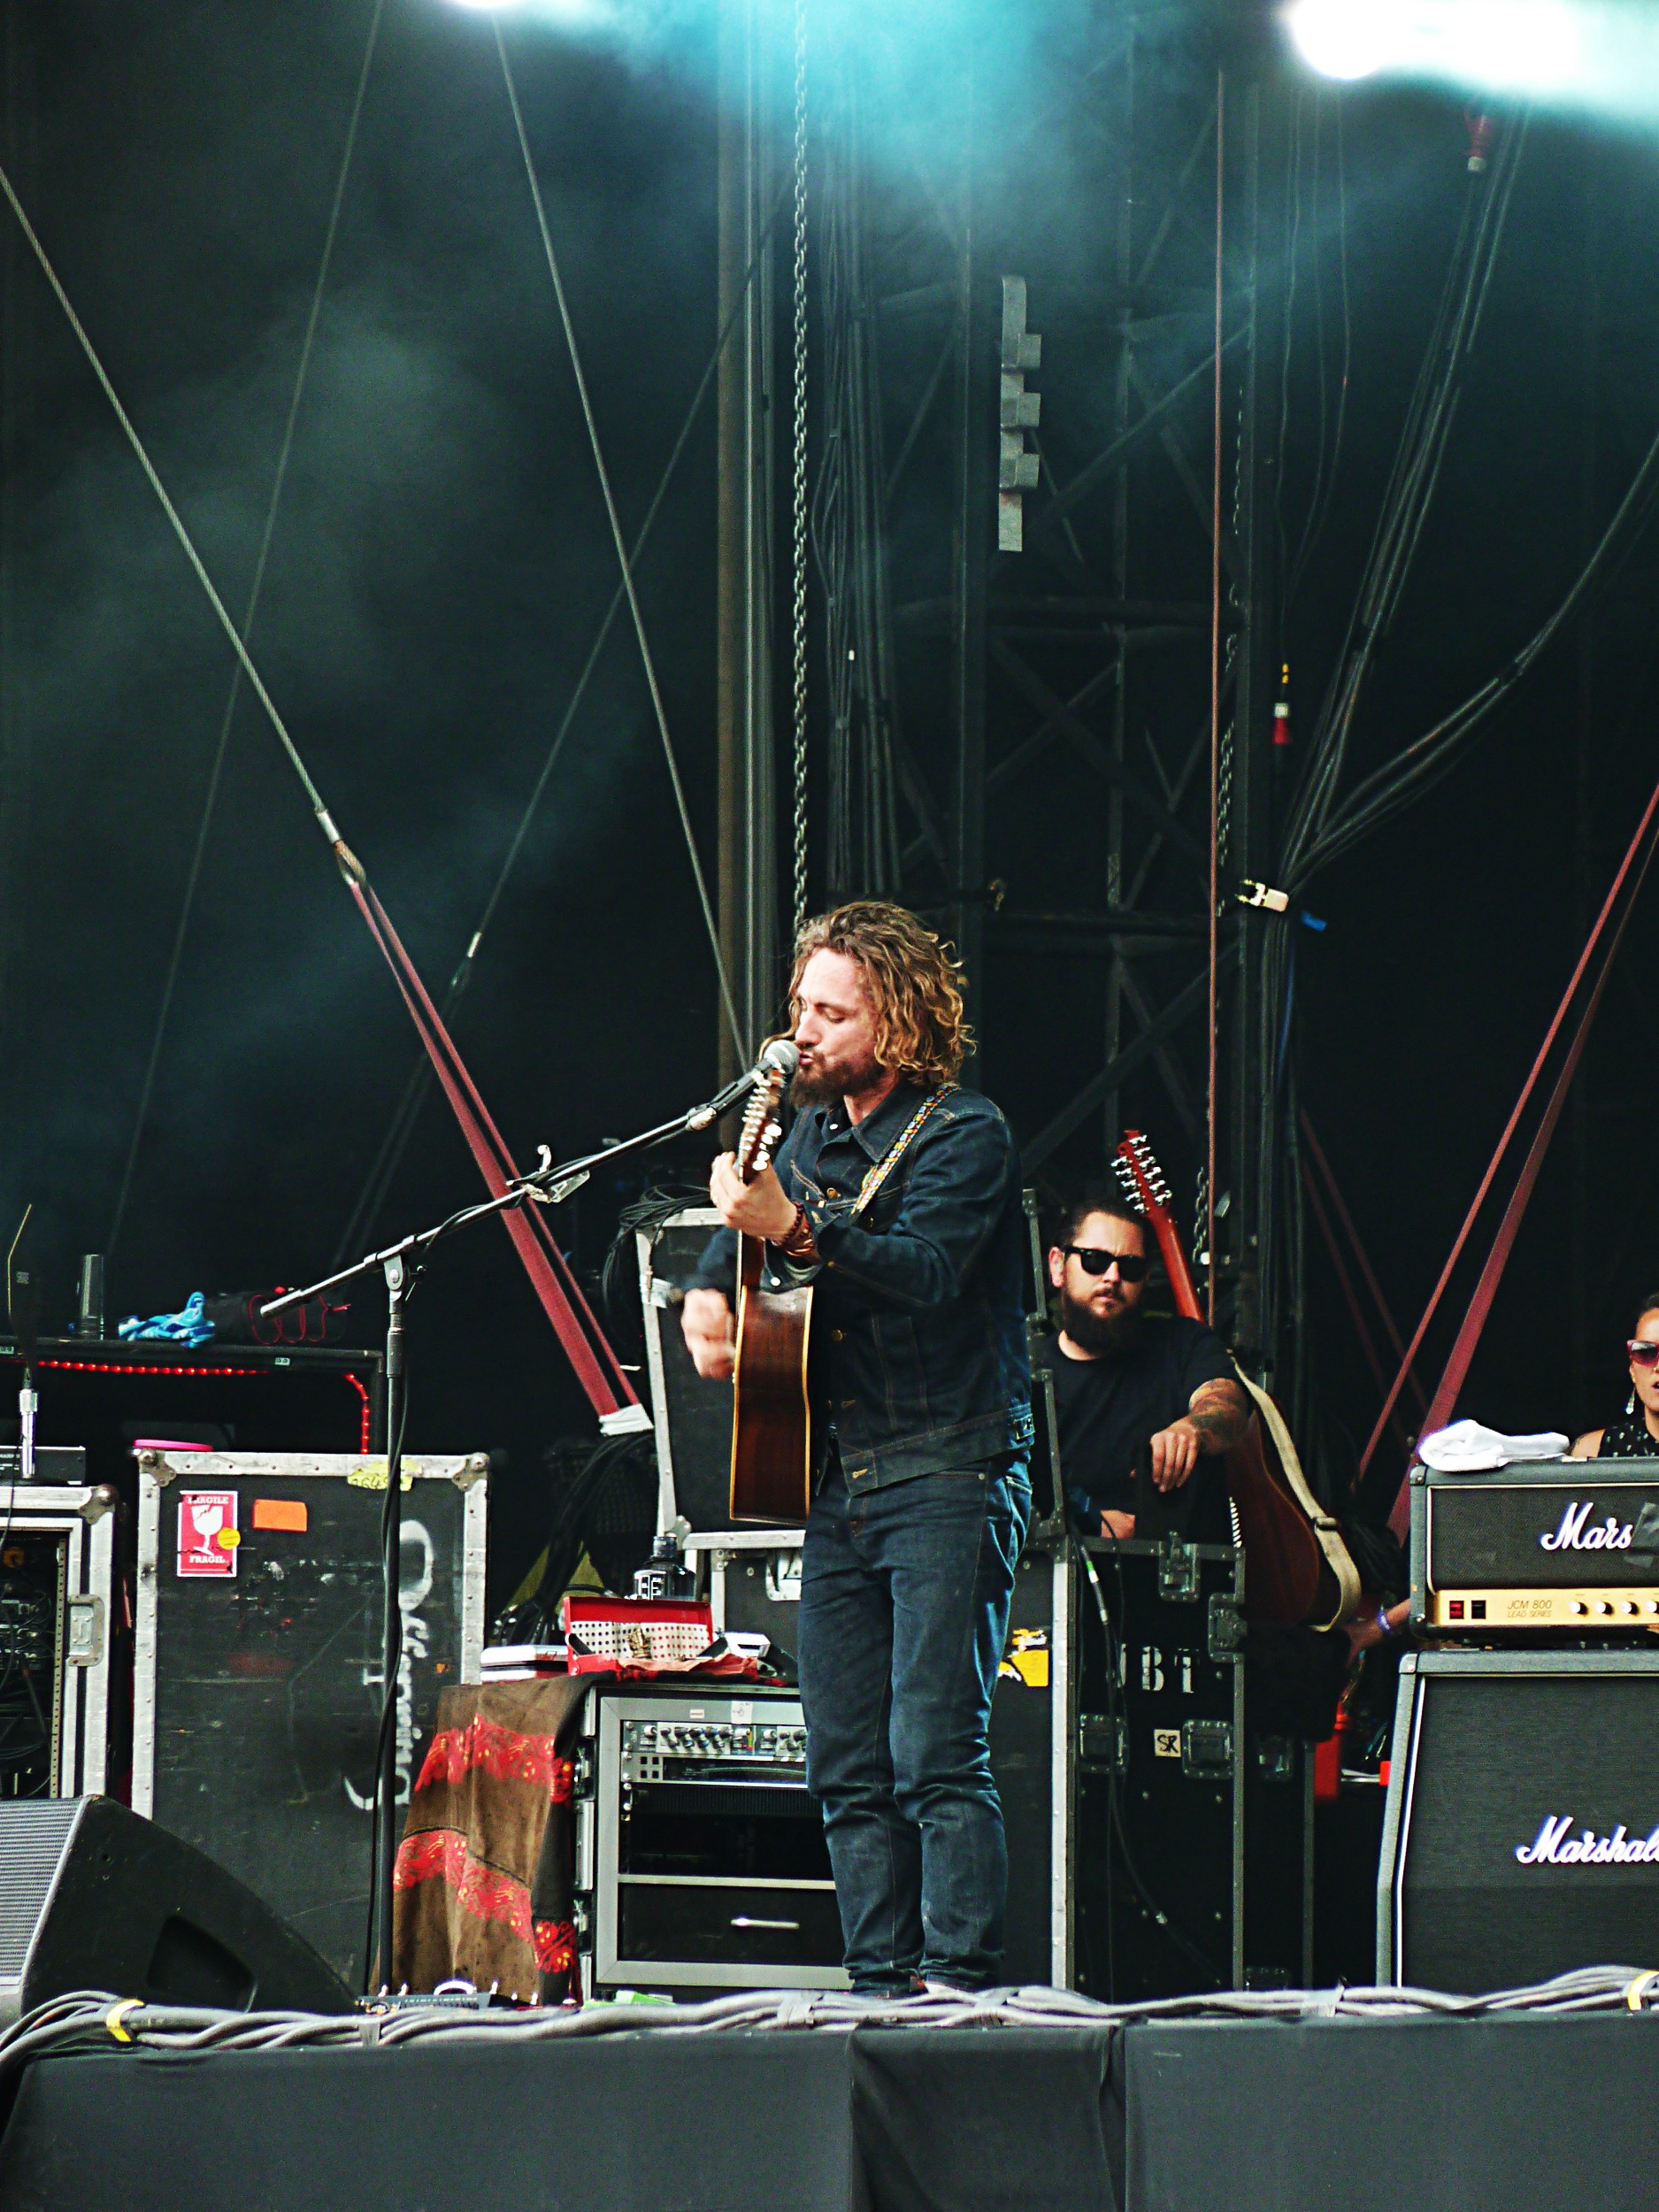 John Butler Trio music band live Rock en Seine 2015 festival concert france stage photo by united states of paris blog